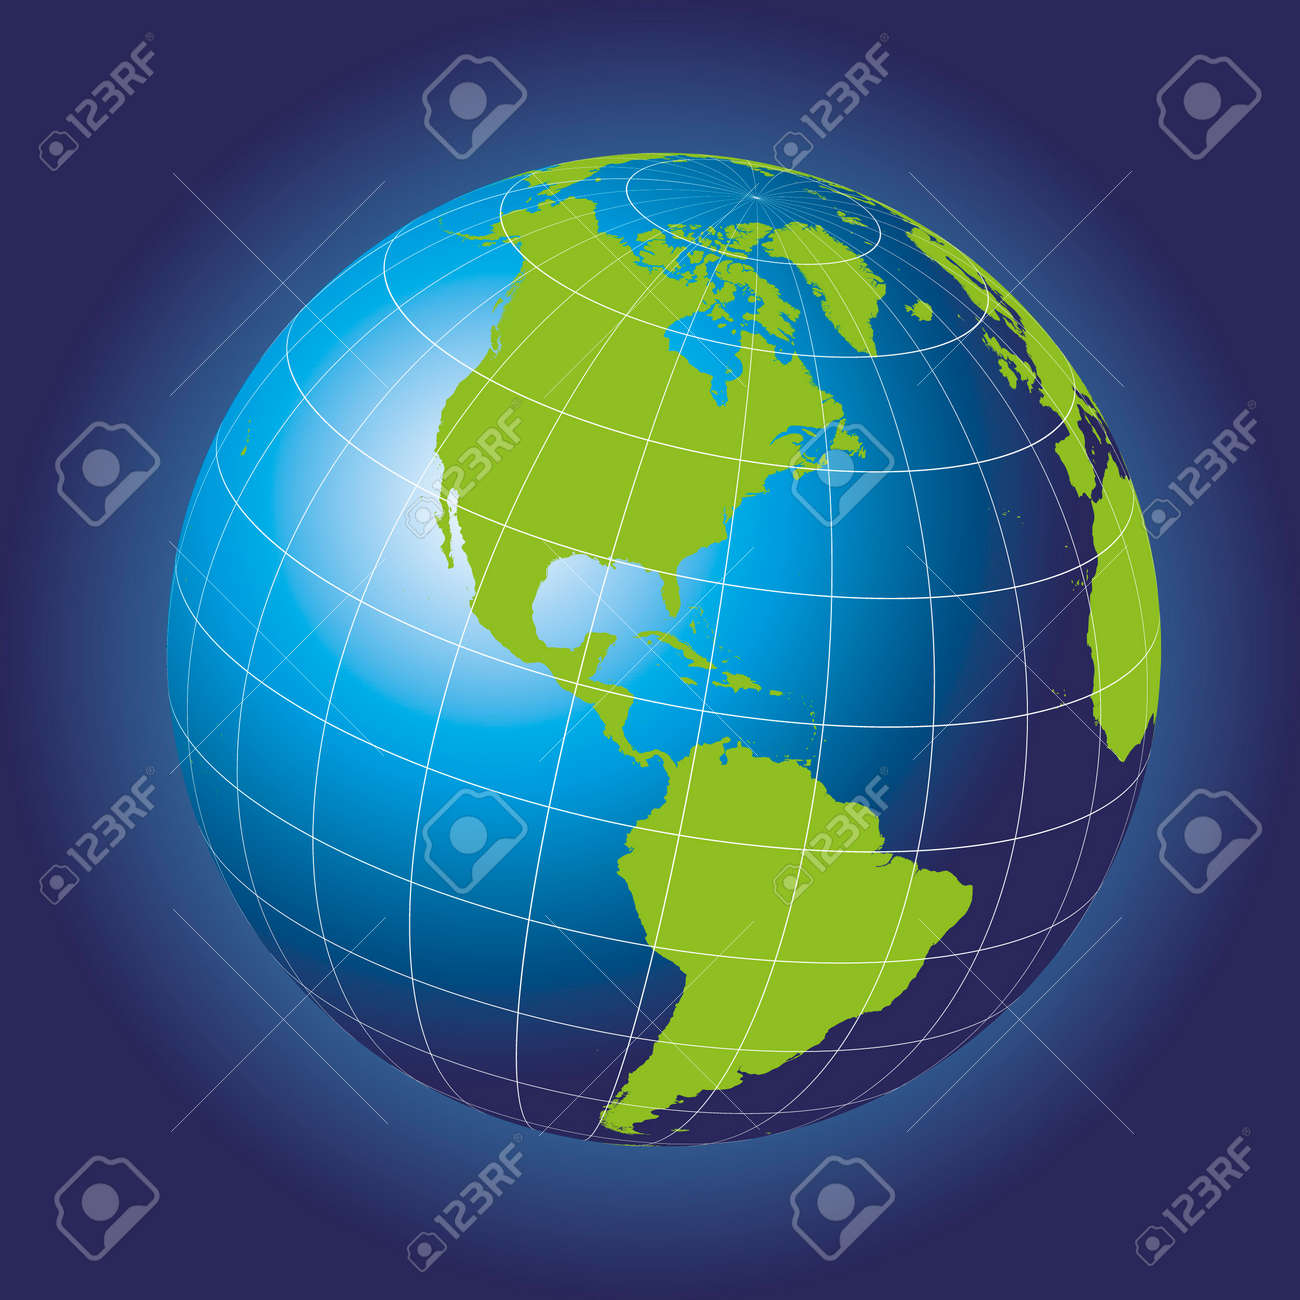 North america map europe greenland north pole south america north america map europe greenland north pole south america earth globe gumiabroncs Choice Image